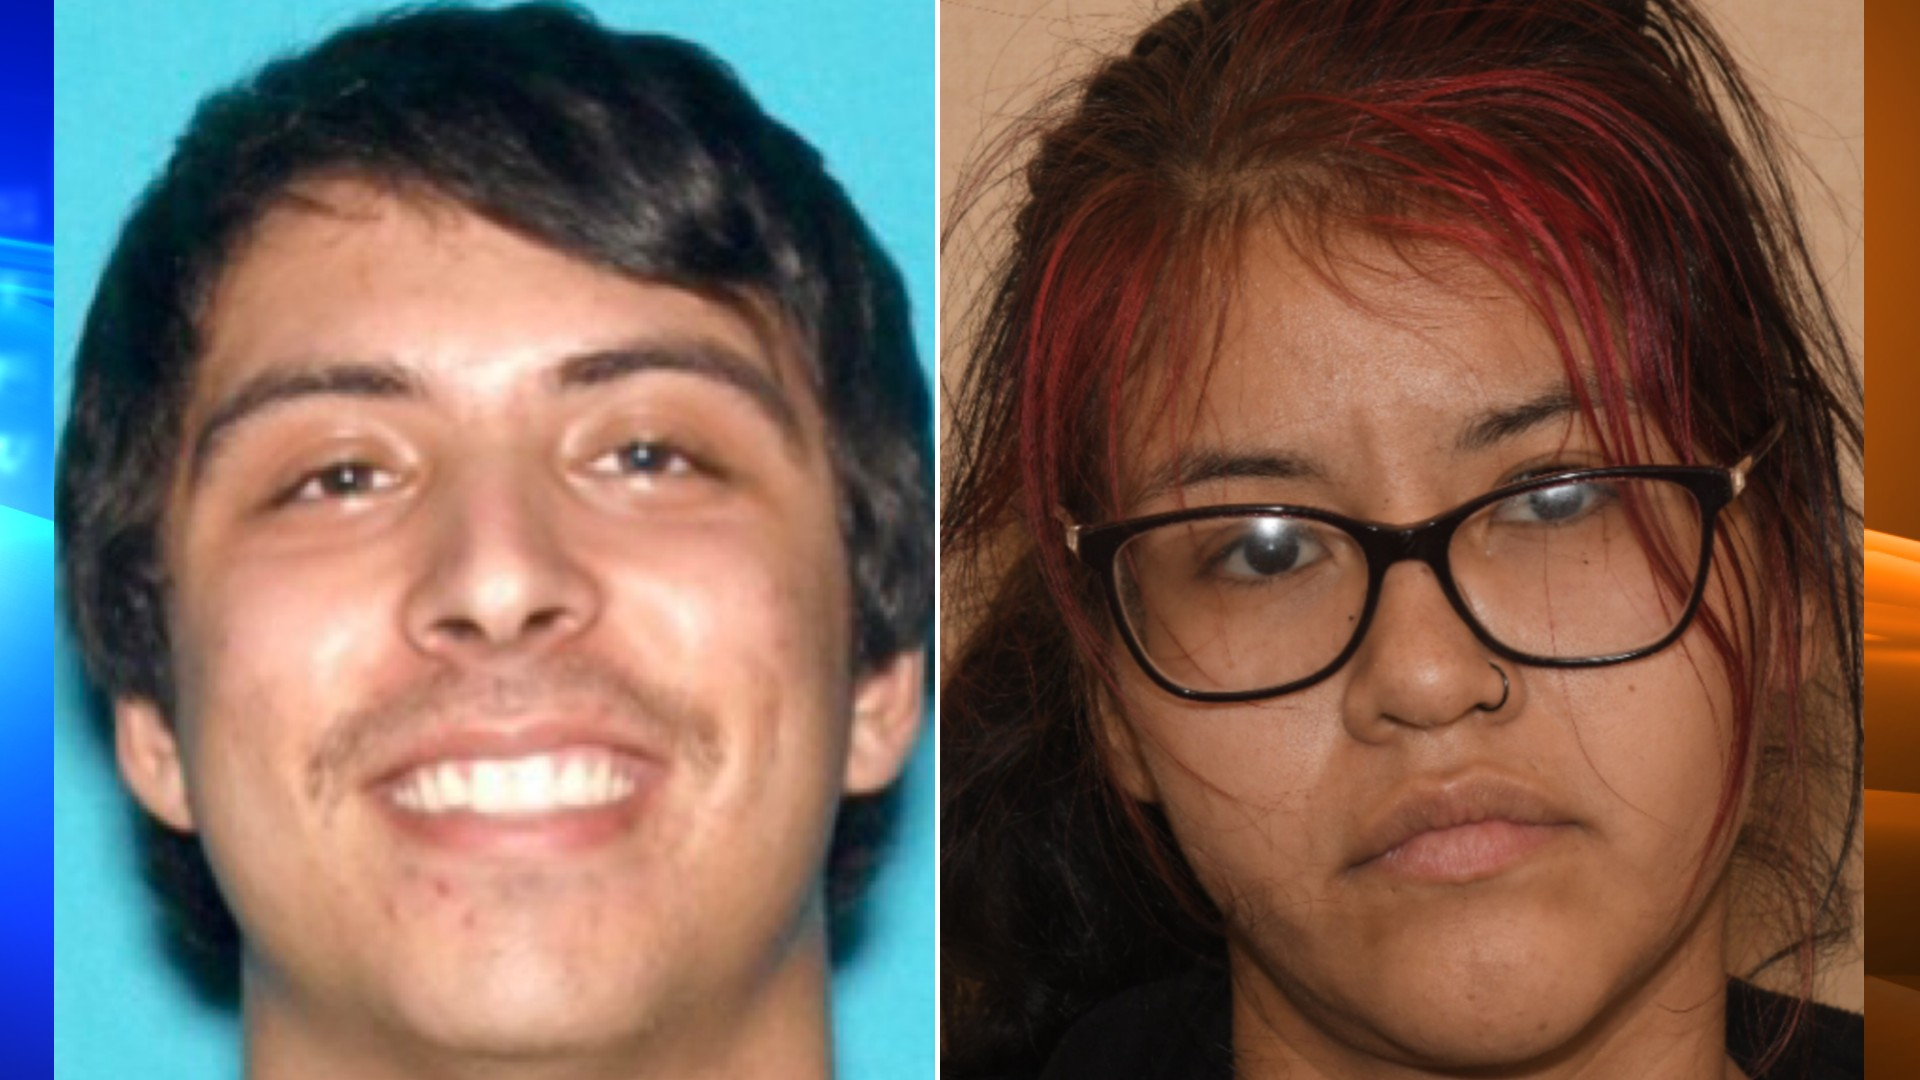 Robert Emilio Minjares, left, and Brittany Juarez, right, are seen in photos released by the Riverside Police Department on June 9, 2021.